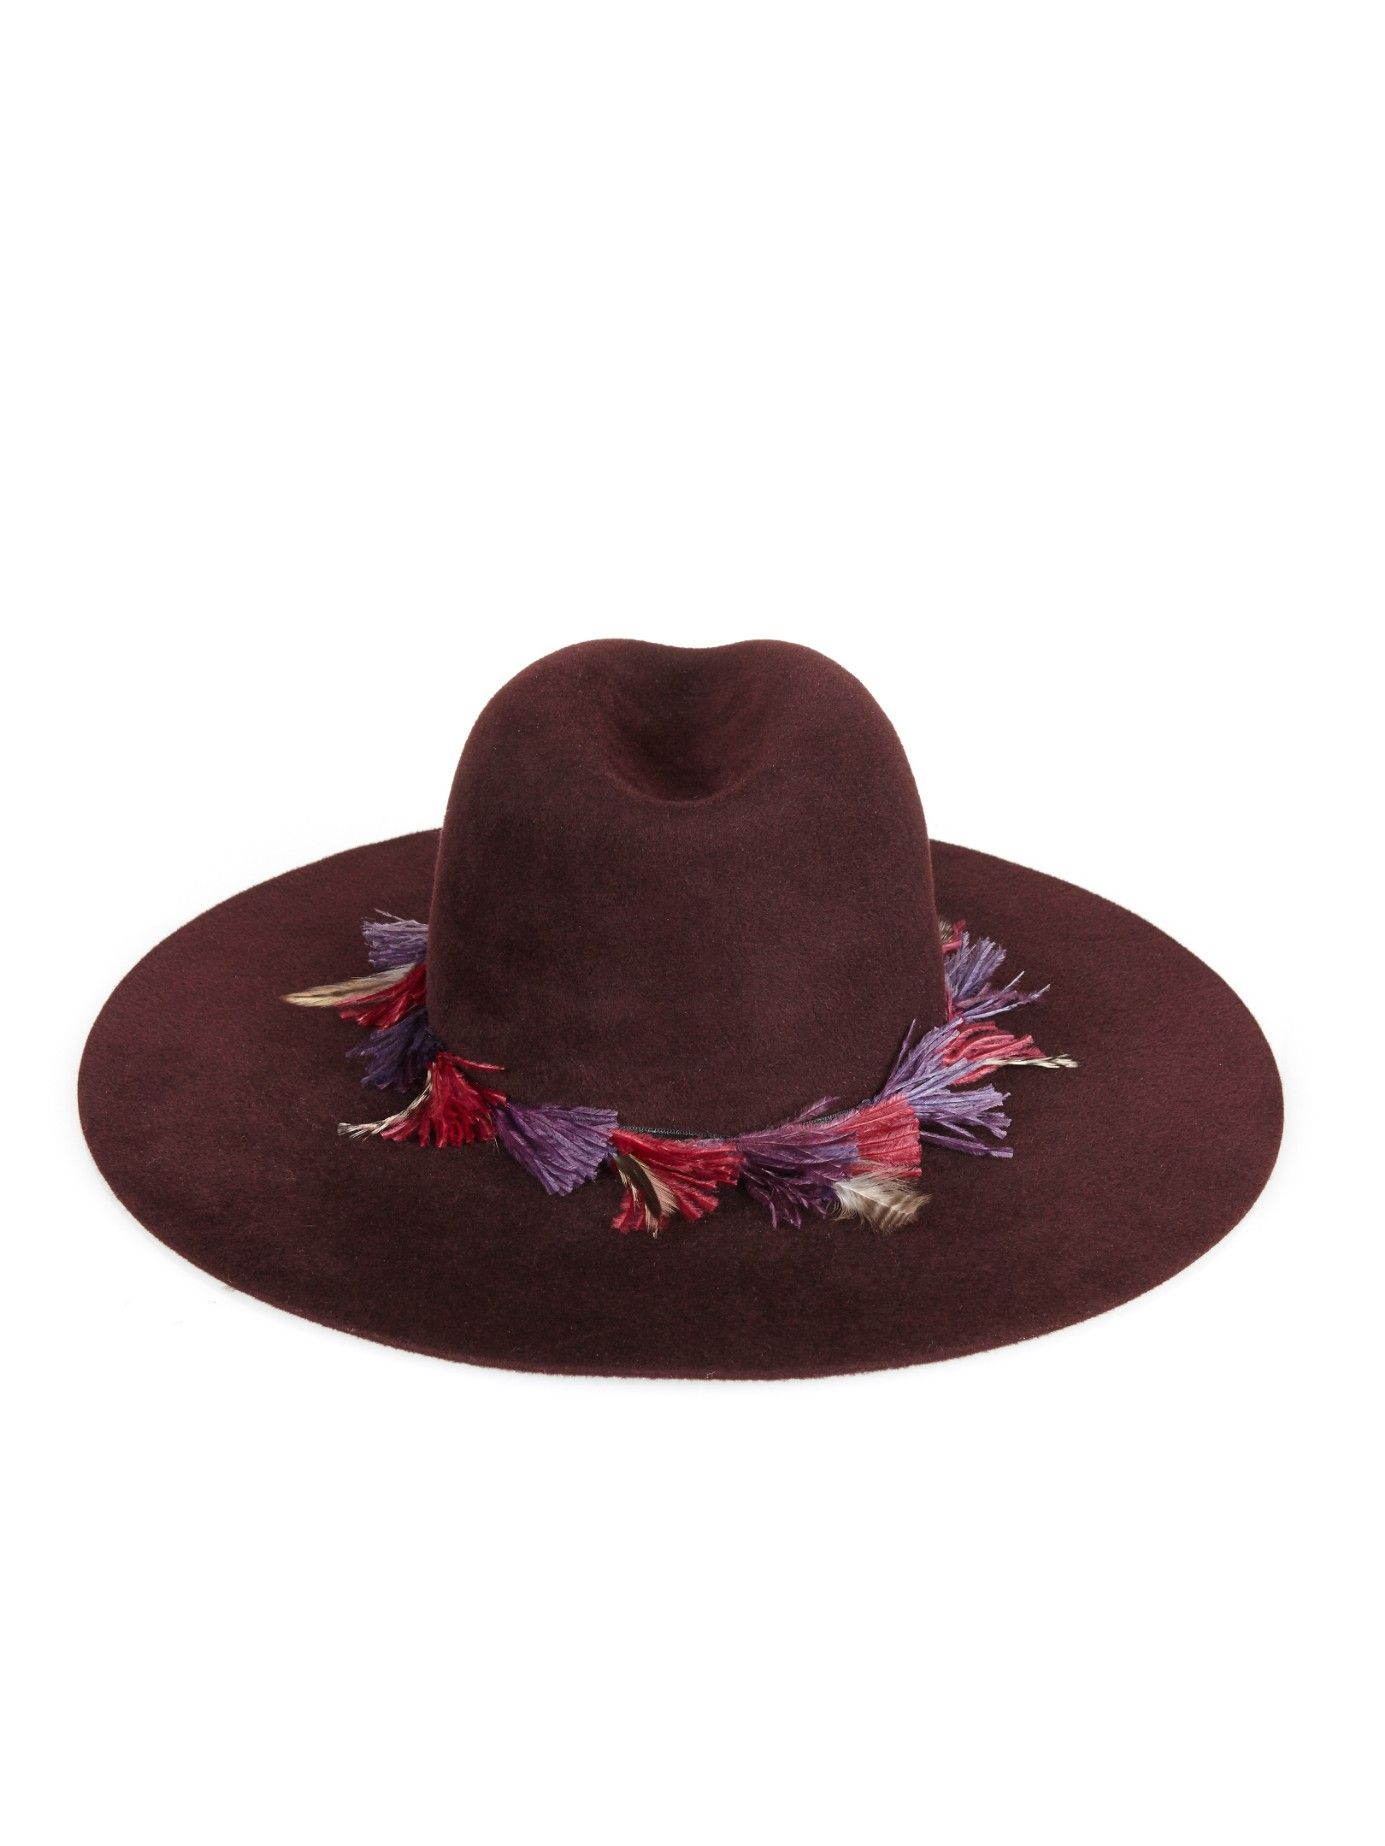 c28d44d1211 Chamonix ostrich-feather wide-brimmed hat